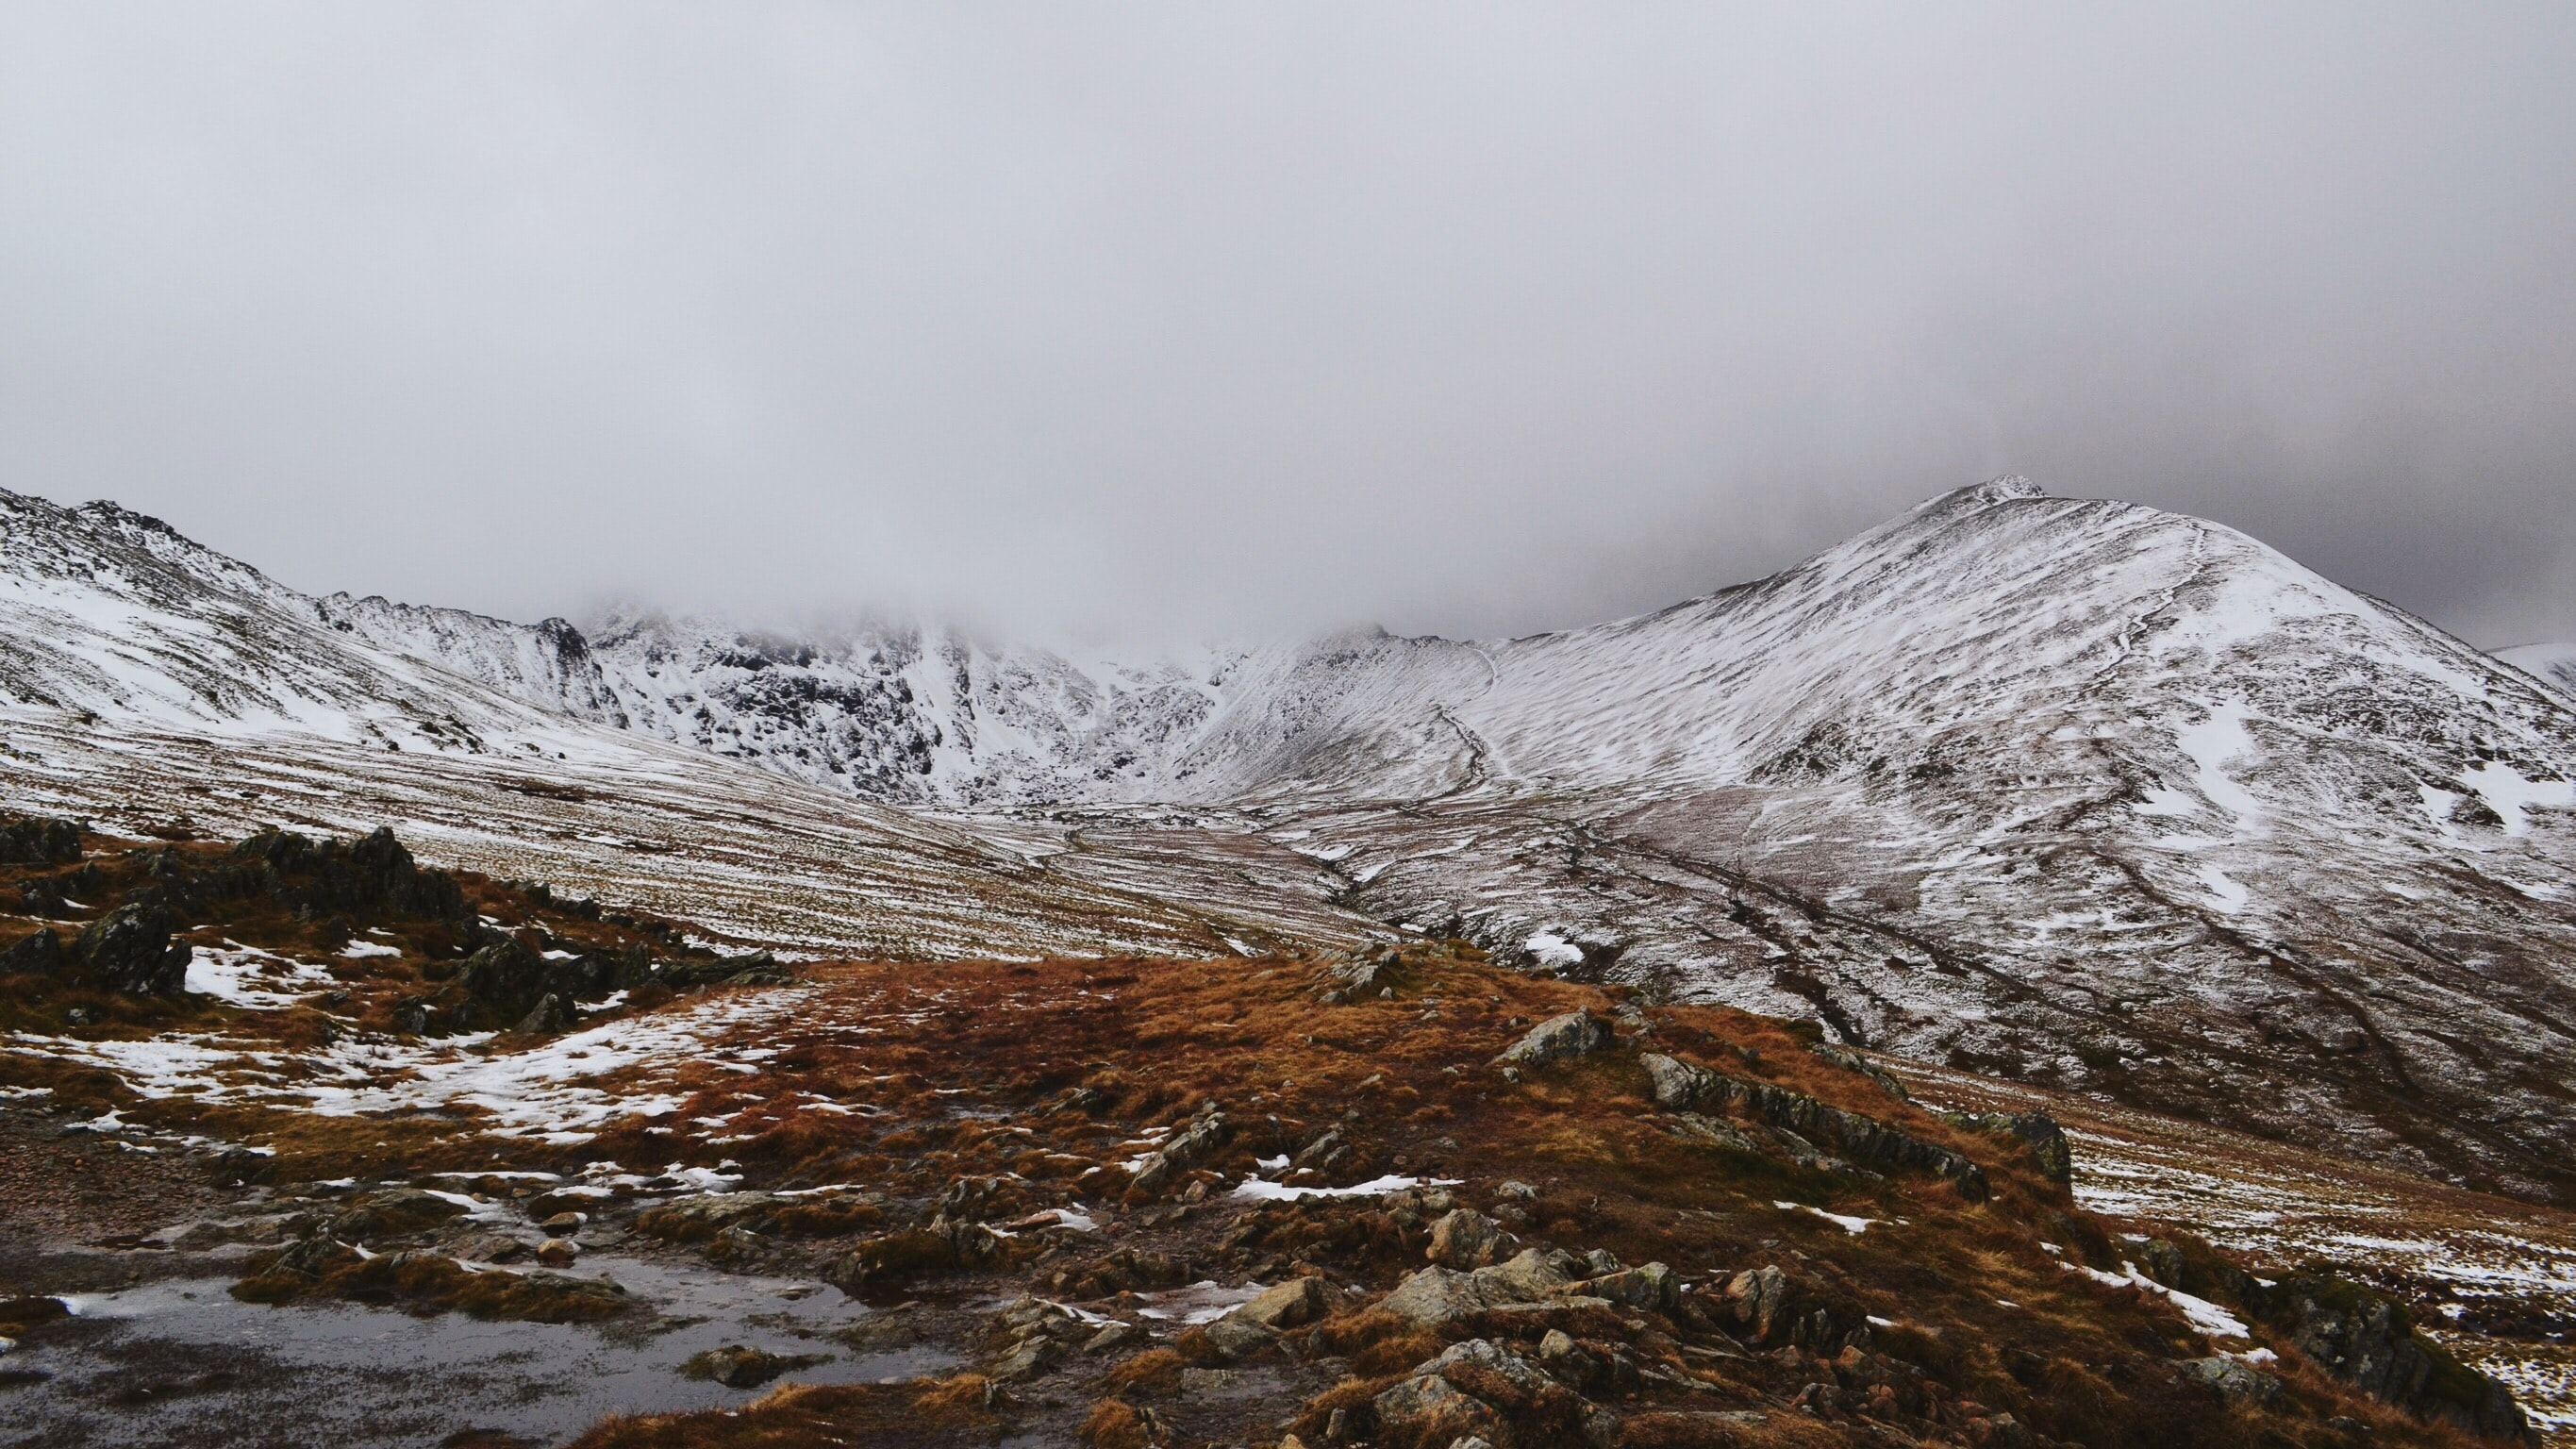 Clouds descend on a valley that is dusted with snow.